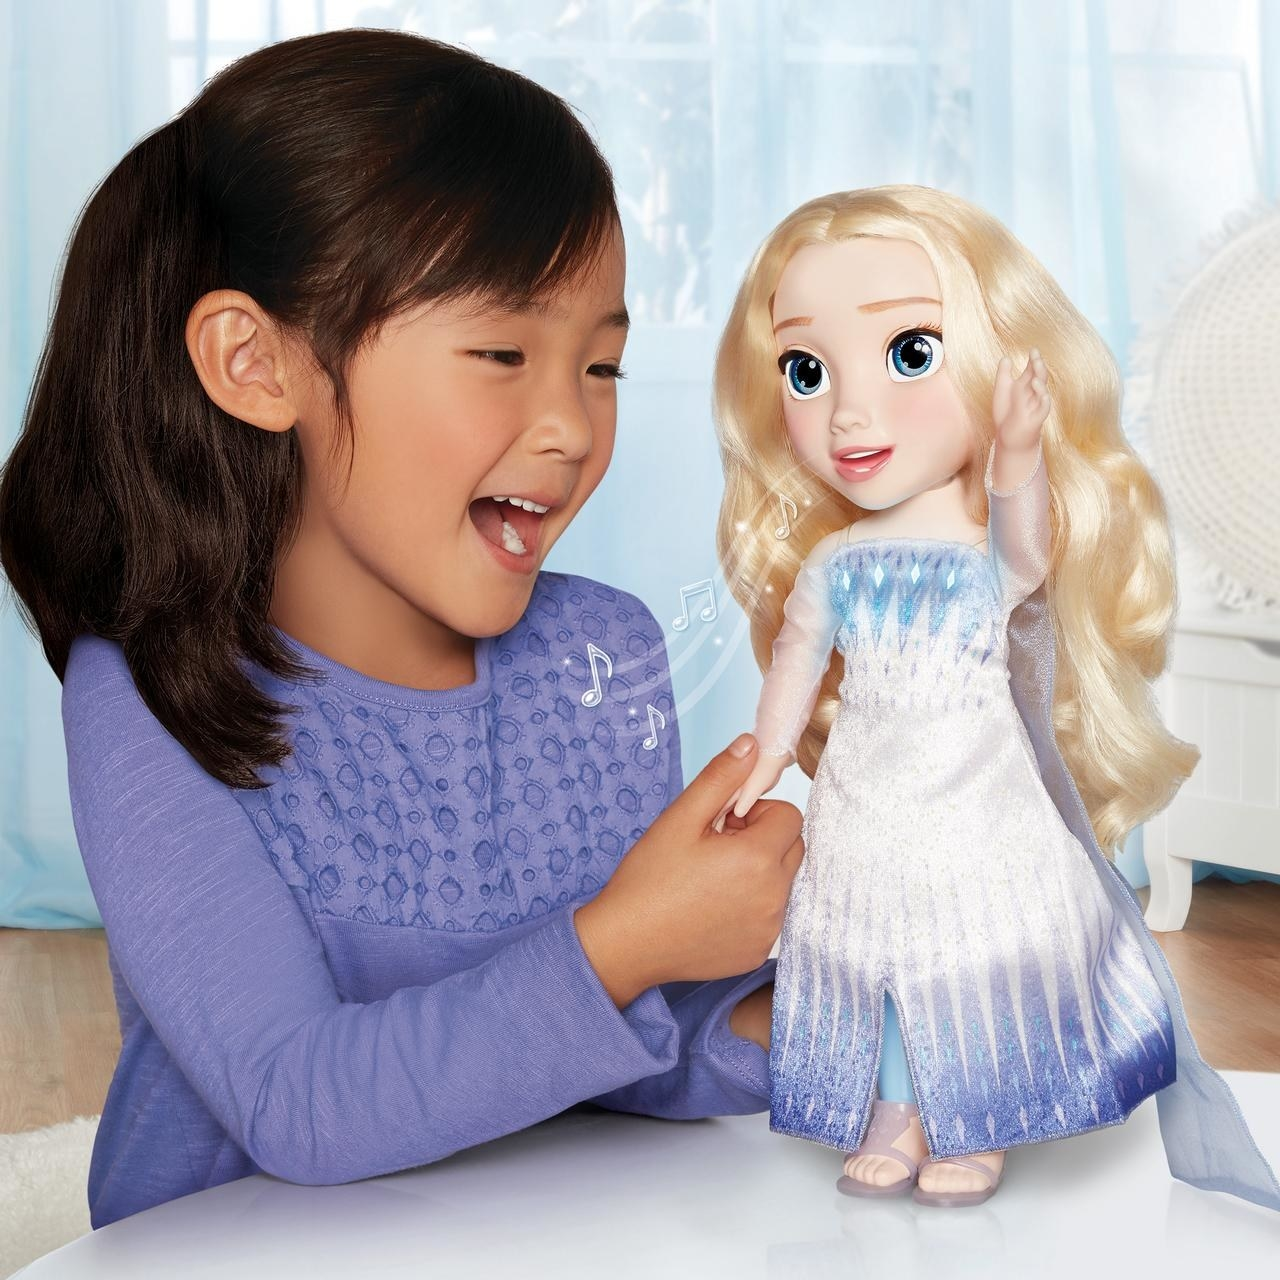 child playing with an elsa doll that sings and moves along